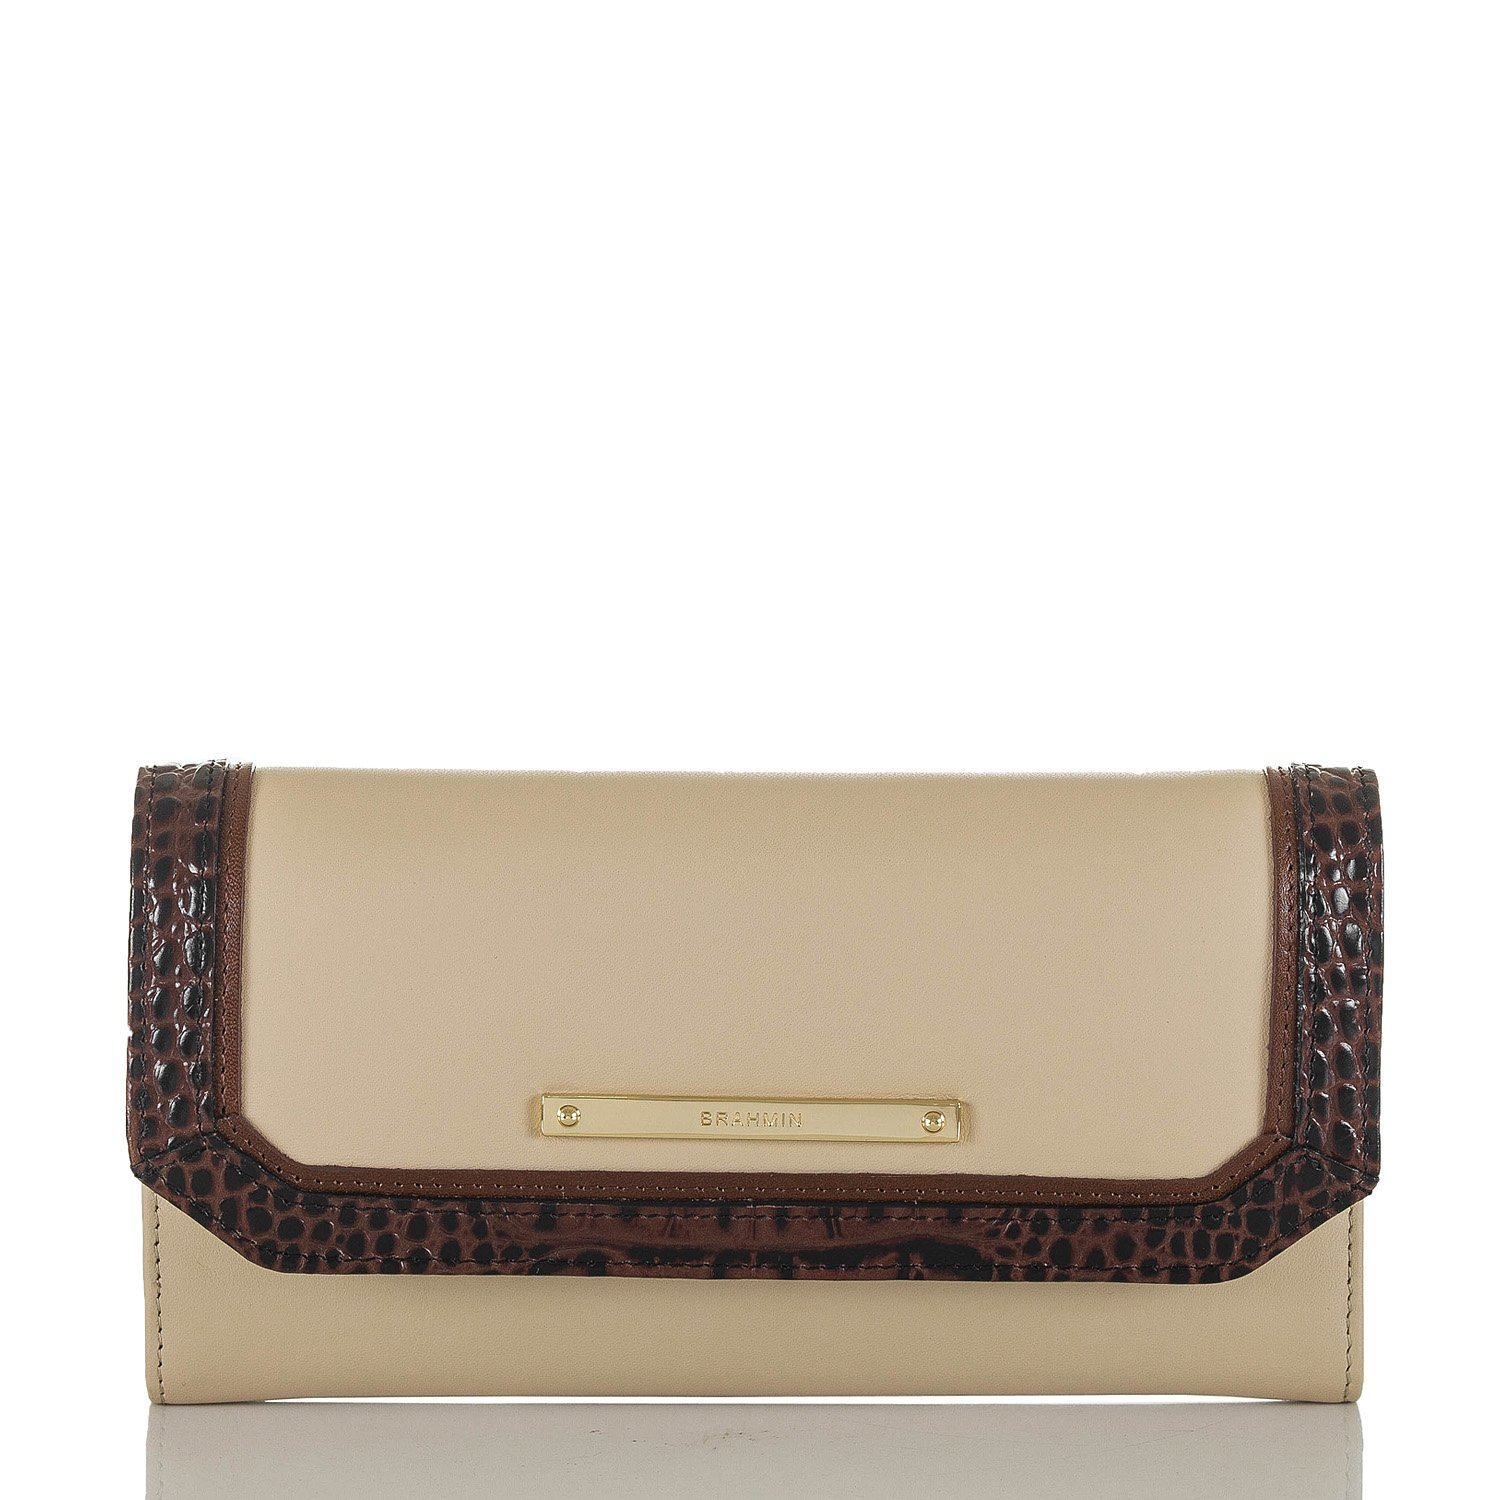 NEW AUTHENTIC BRAHMIN LEATHER SOFT CHECKBOOK WALLET (Ivory Summer Tuscan Tri Texture)